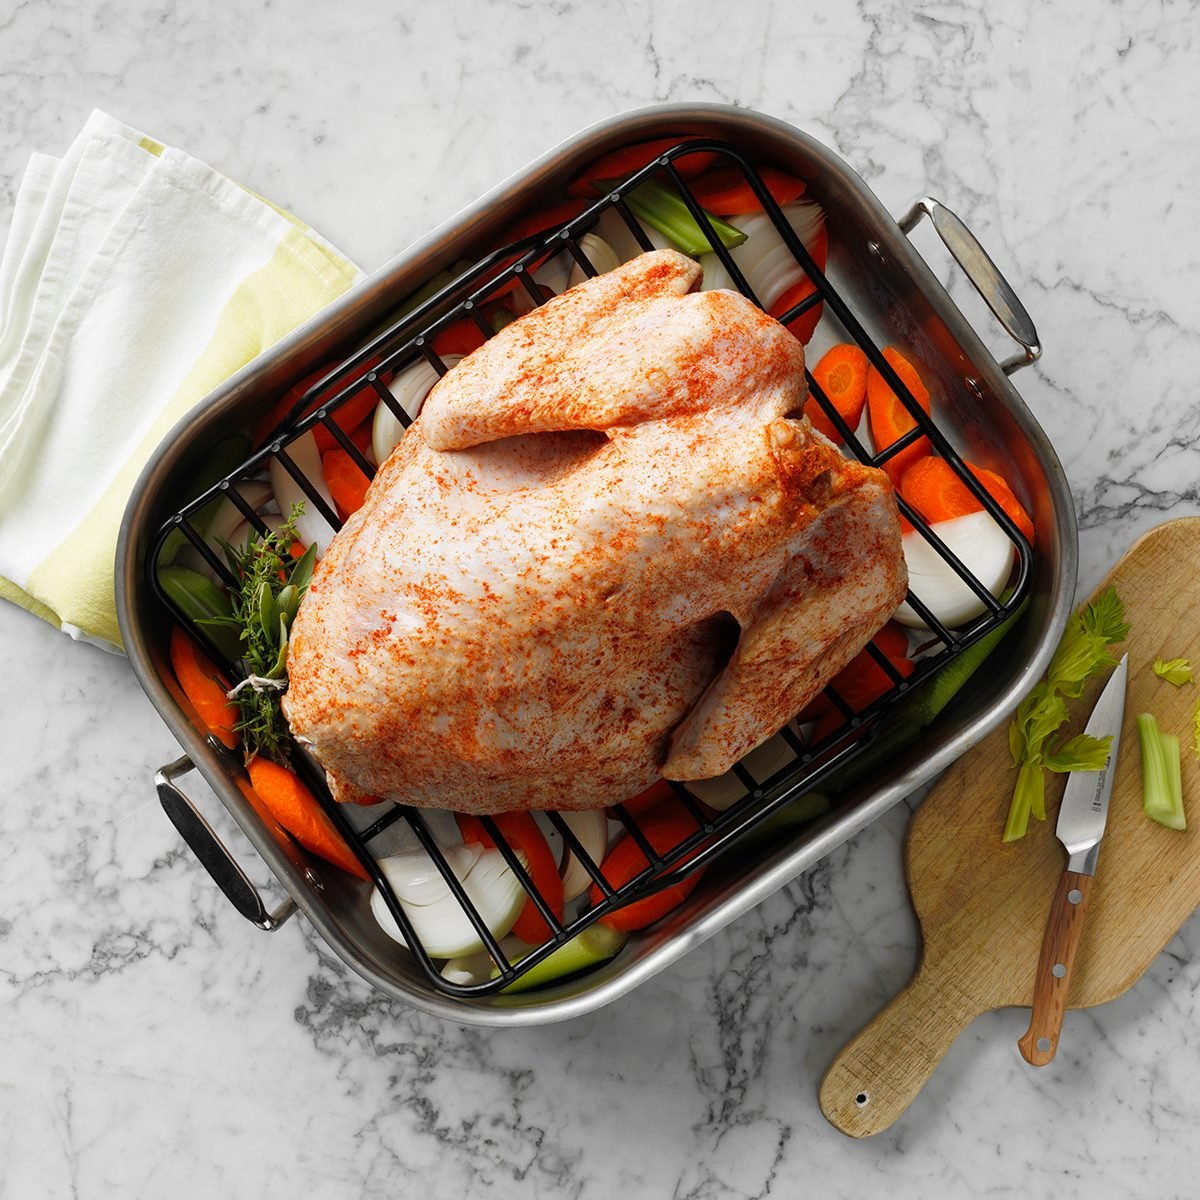 How to Cook Upside-Down Turkey—the Turkey Technique You Haven't Tried Yet